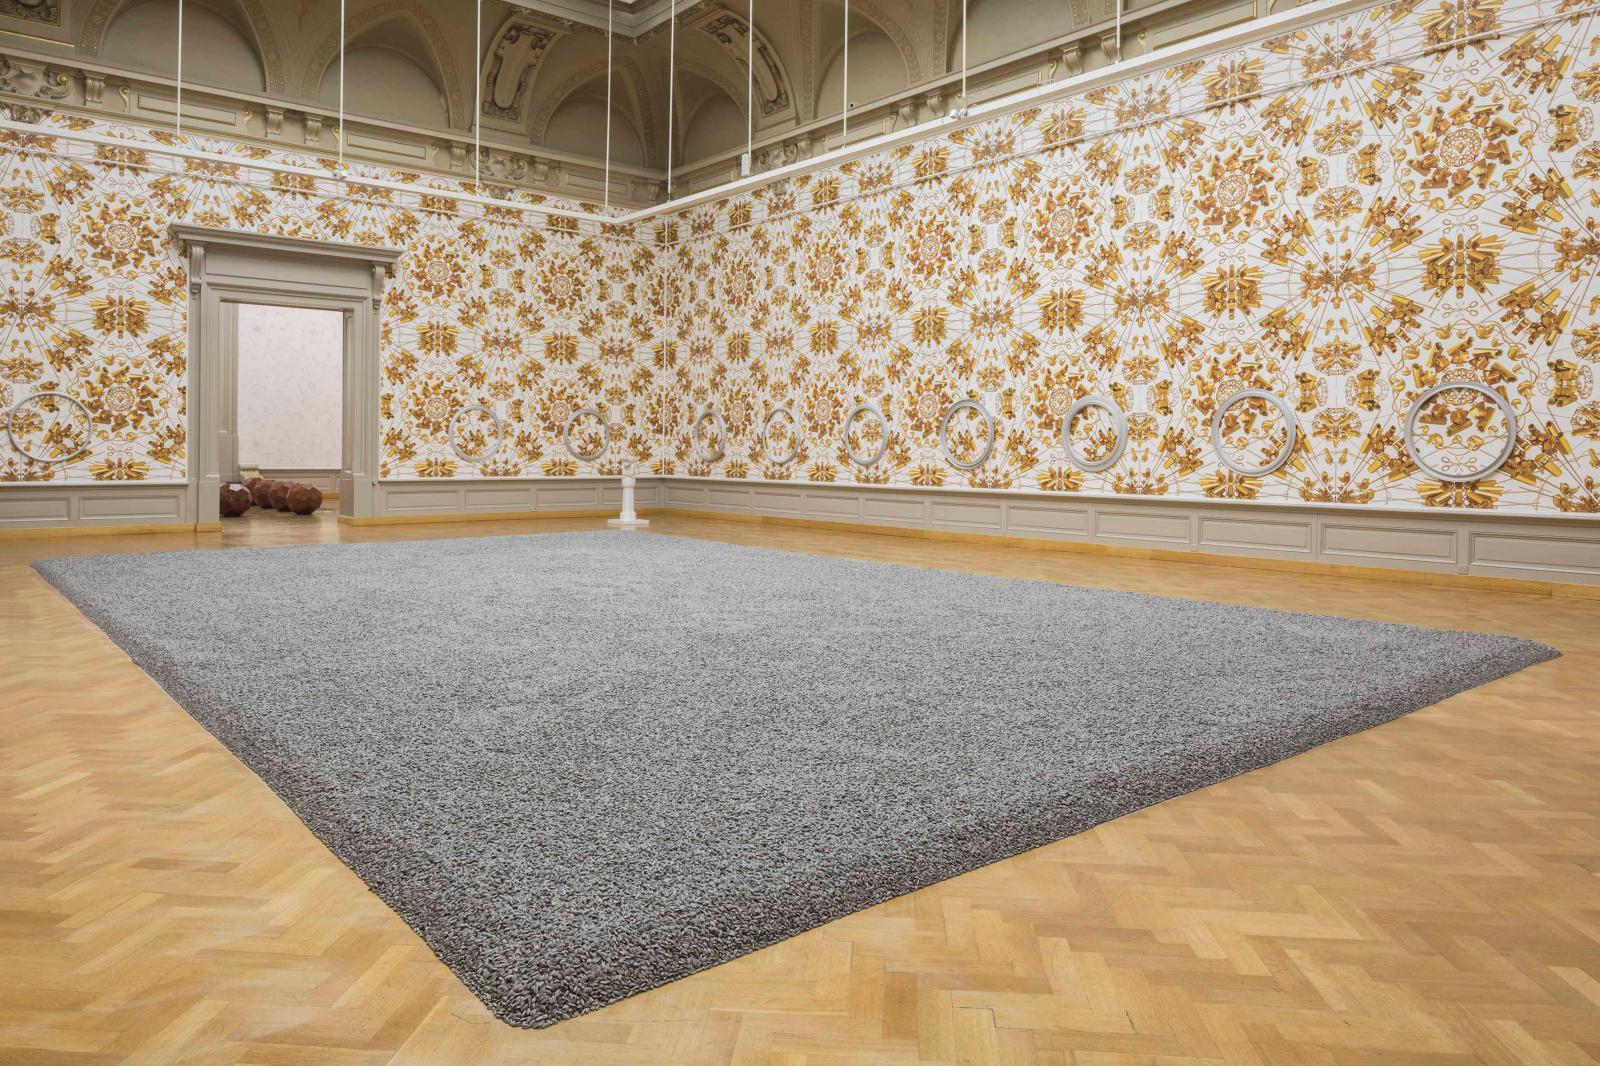 "Ai Weiwei (b. 1957), ""Sunflower Seeds"" (2010, porcelain) and ""The Animal That Looks Like a Llama but Is Really an Alpaca ""(2015, wallpaper), at the ex"